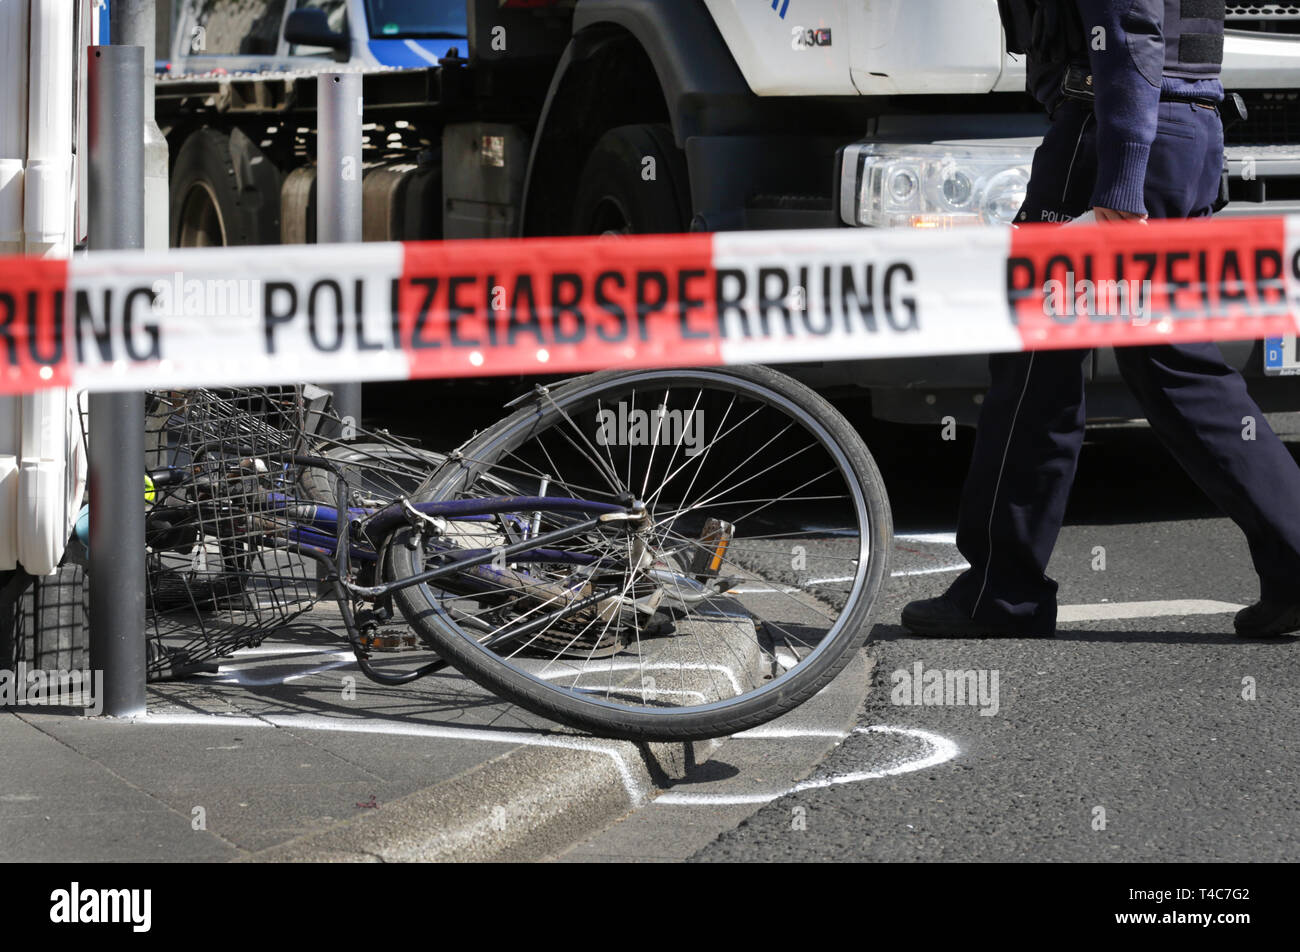 "16 April 2019, North Rhine-Westphalia, Düsseldorf: Behind a barrier tape with the inscription ""Police barrier"", a bicycle is lying in front of a truck at the scene of the accident. There has been an accident with a truck (in the back) and a cyclist in downtown Düsseldorf. More precise circumstances regarding the cause of the accident are not yet known. Photo: Martin Gerten/dpa Stock Photo"